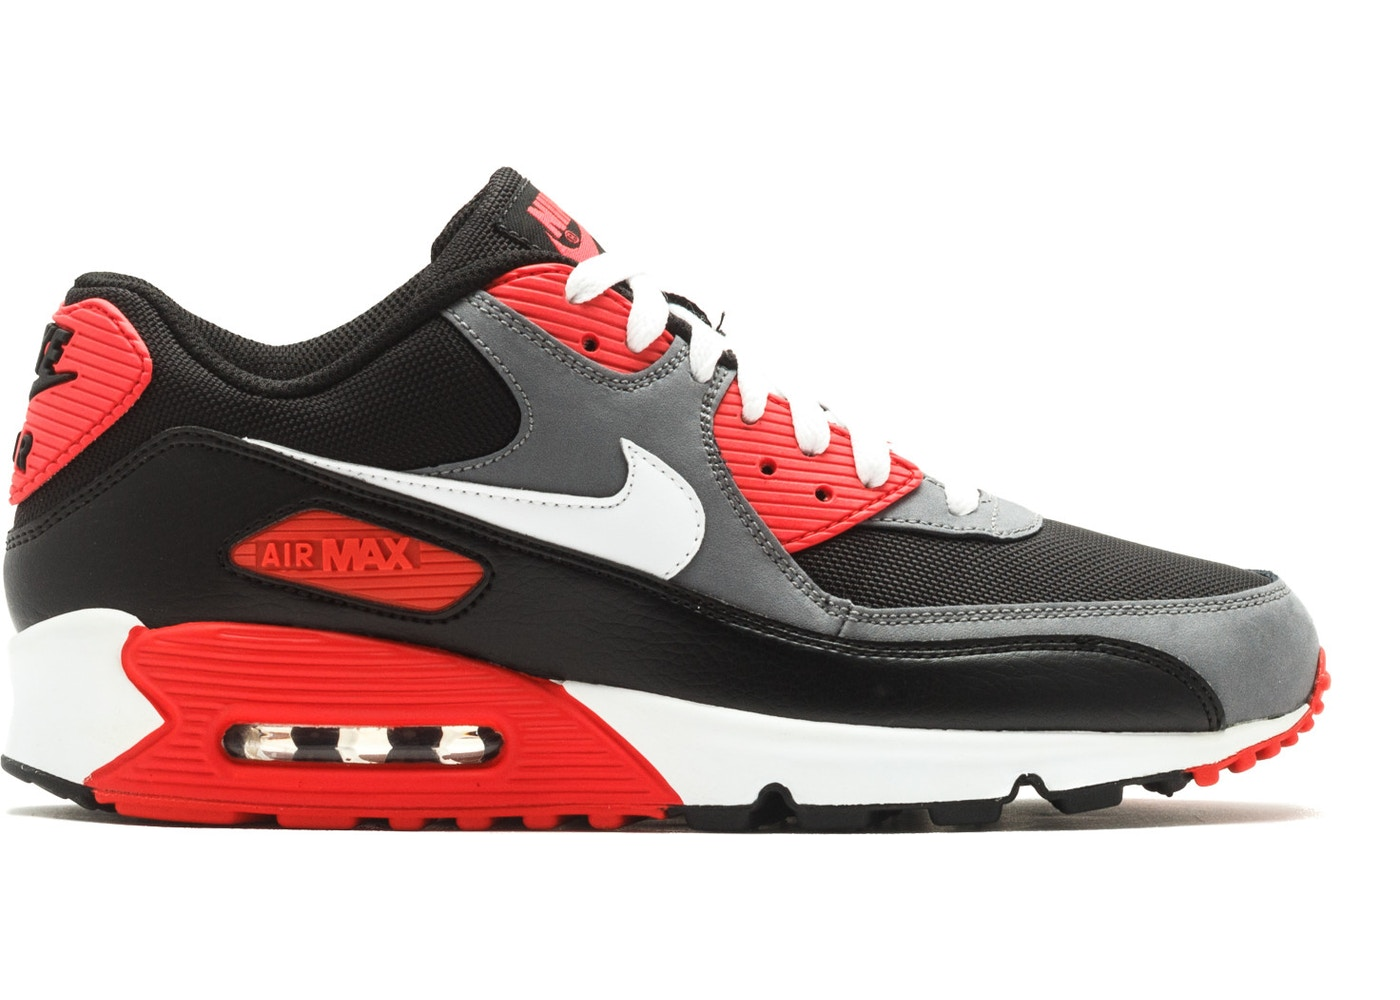 c92773f9 Sell. or Ask. Size: 8.5. View All Bids. Air Max 90 Black Infrared